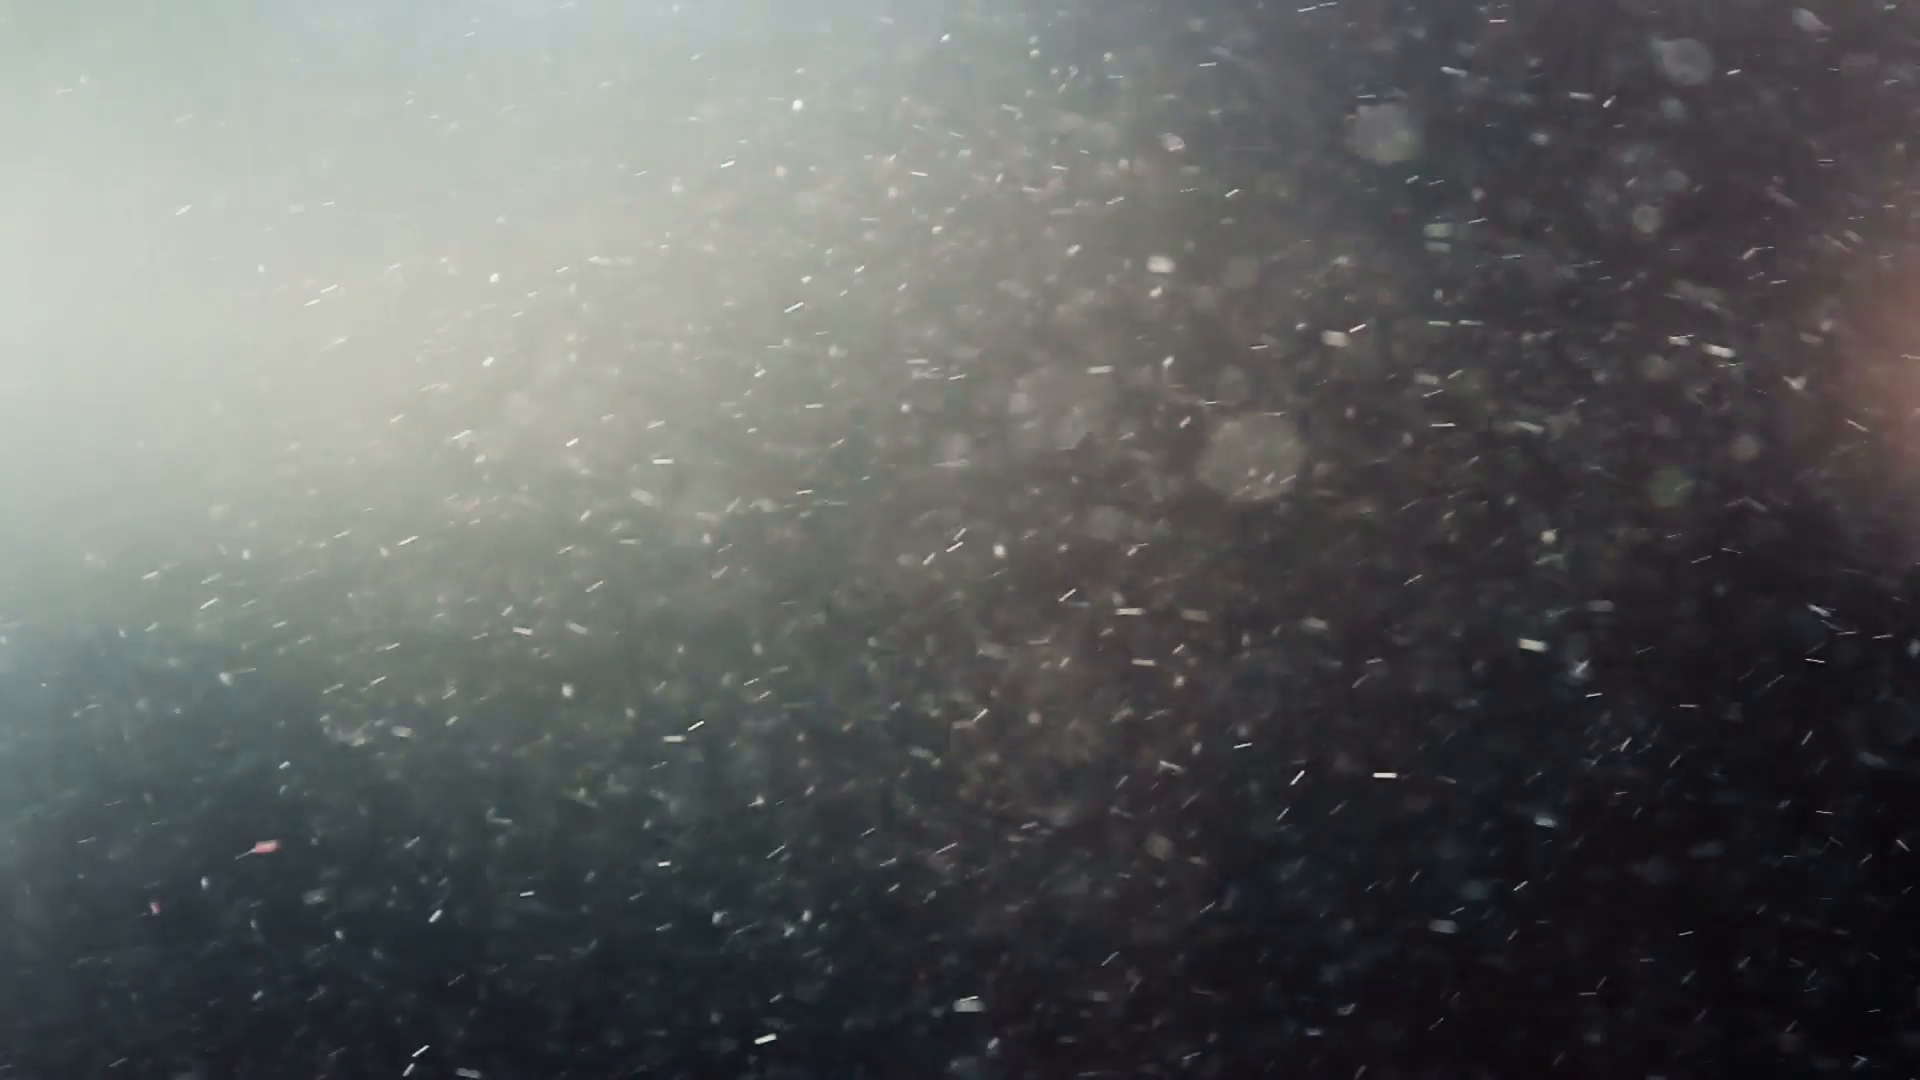 Dust Png - Turbulent dust particles, compositing asset. Stock Video Footage -  Videoblocks